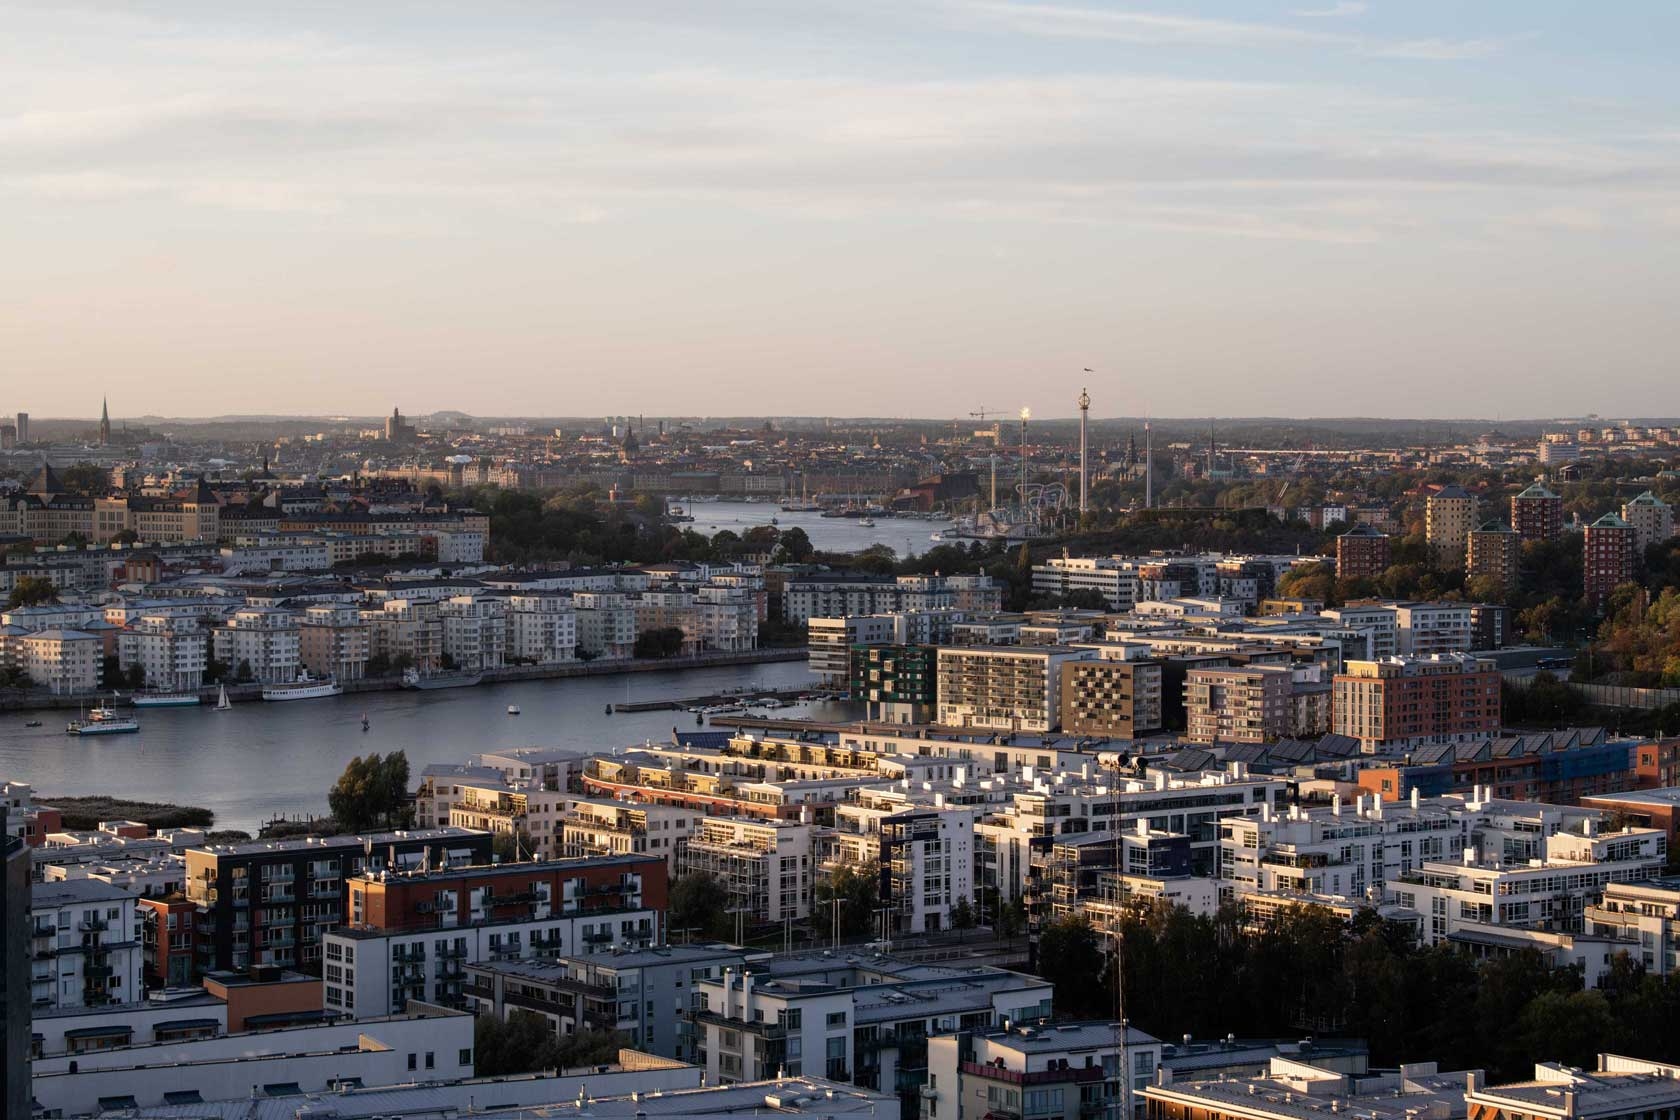 The city of Stockholm